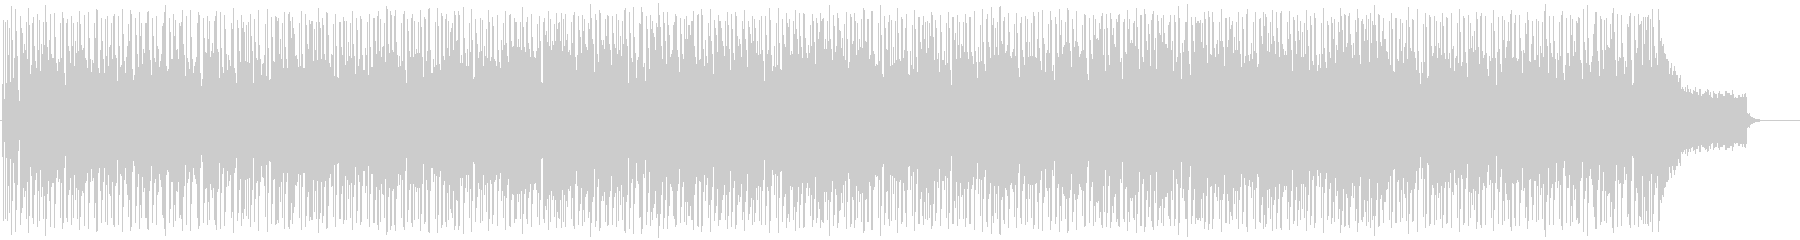 Pop and bright image with bright image's unreproduced waveform